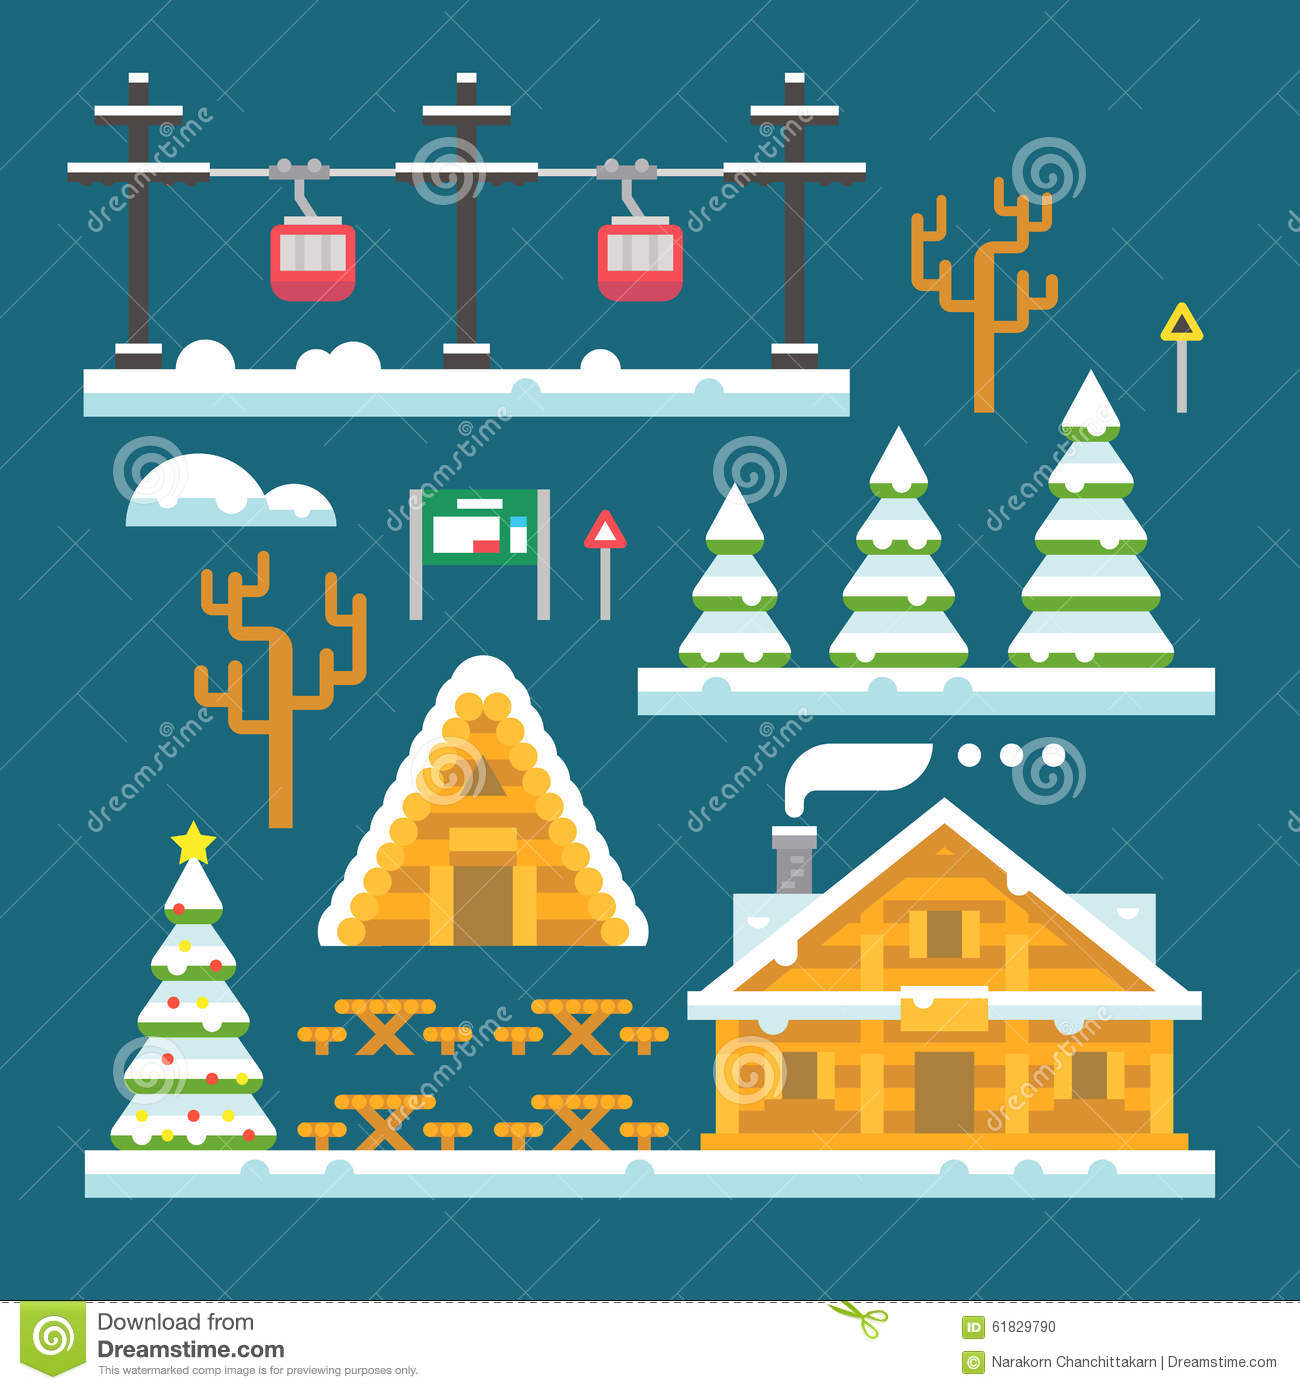 Winter ski resort flat design stock illustration image for Ski designhotel